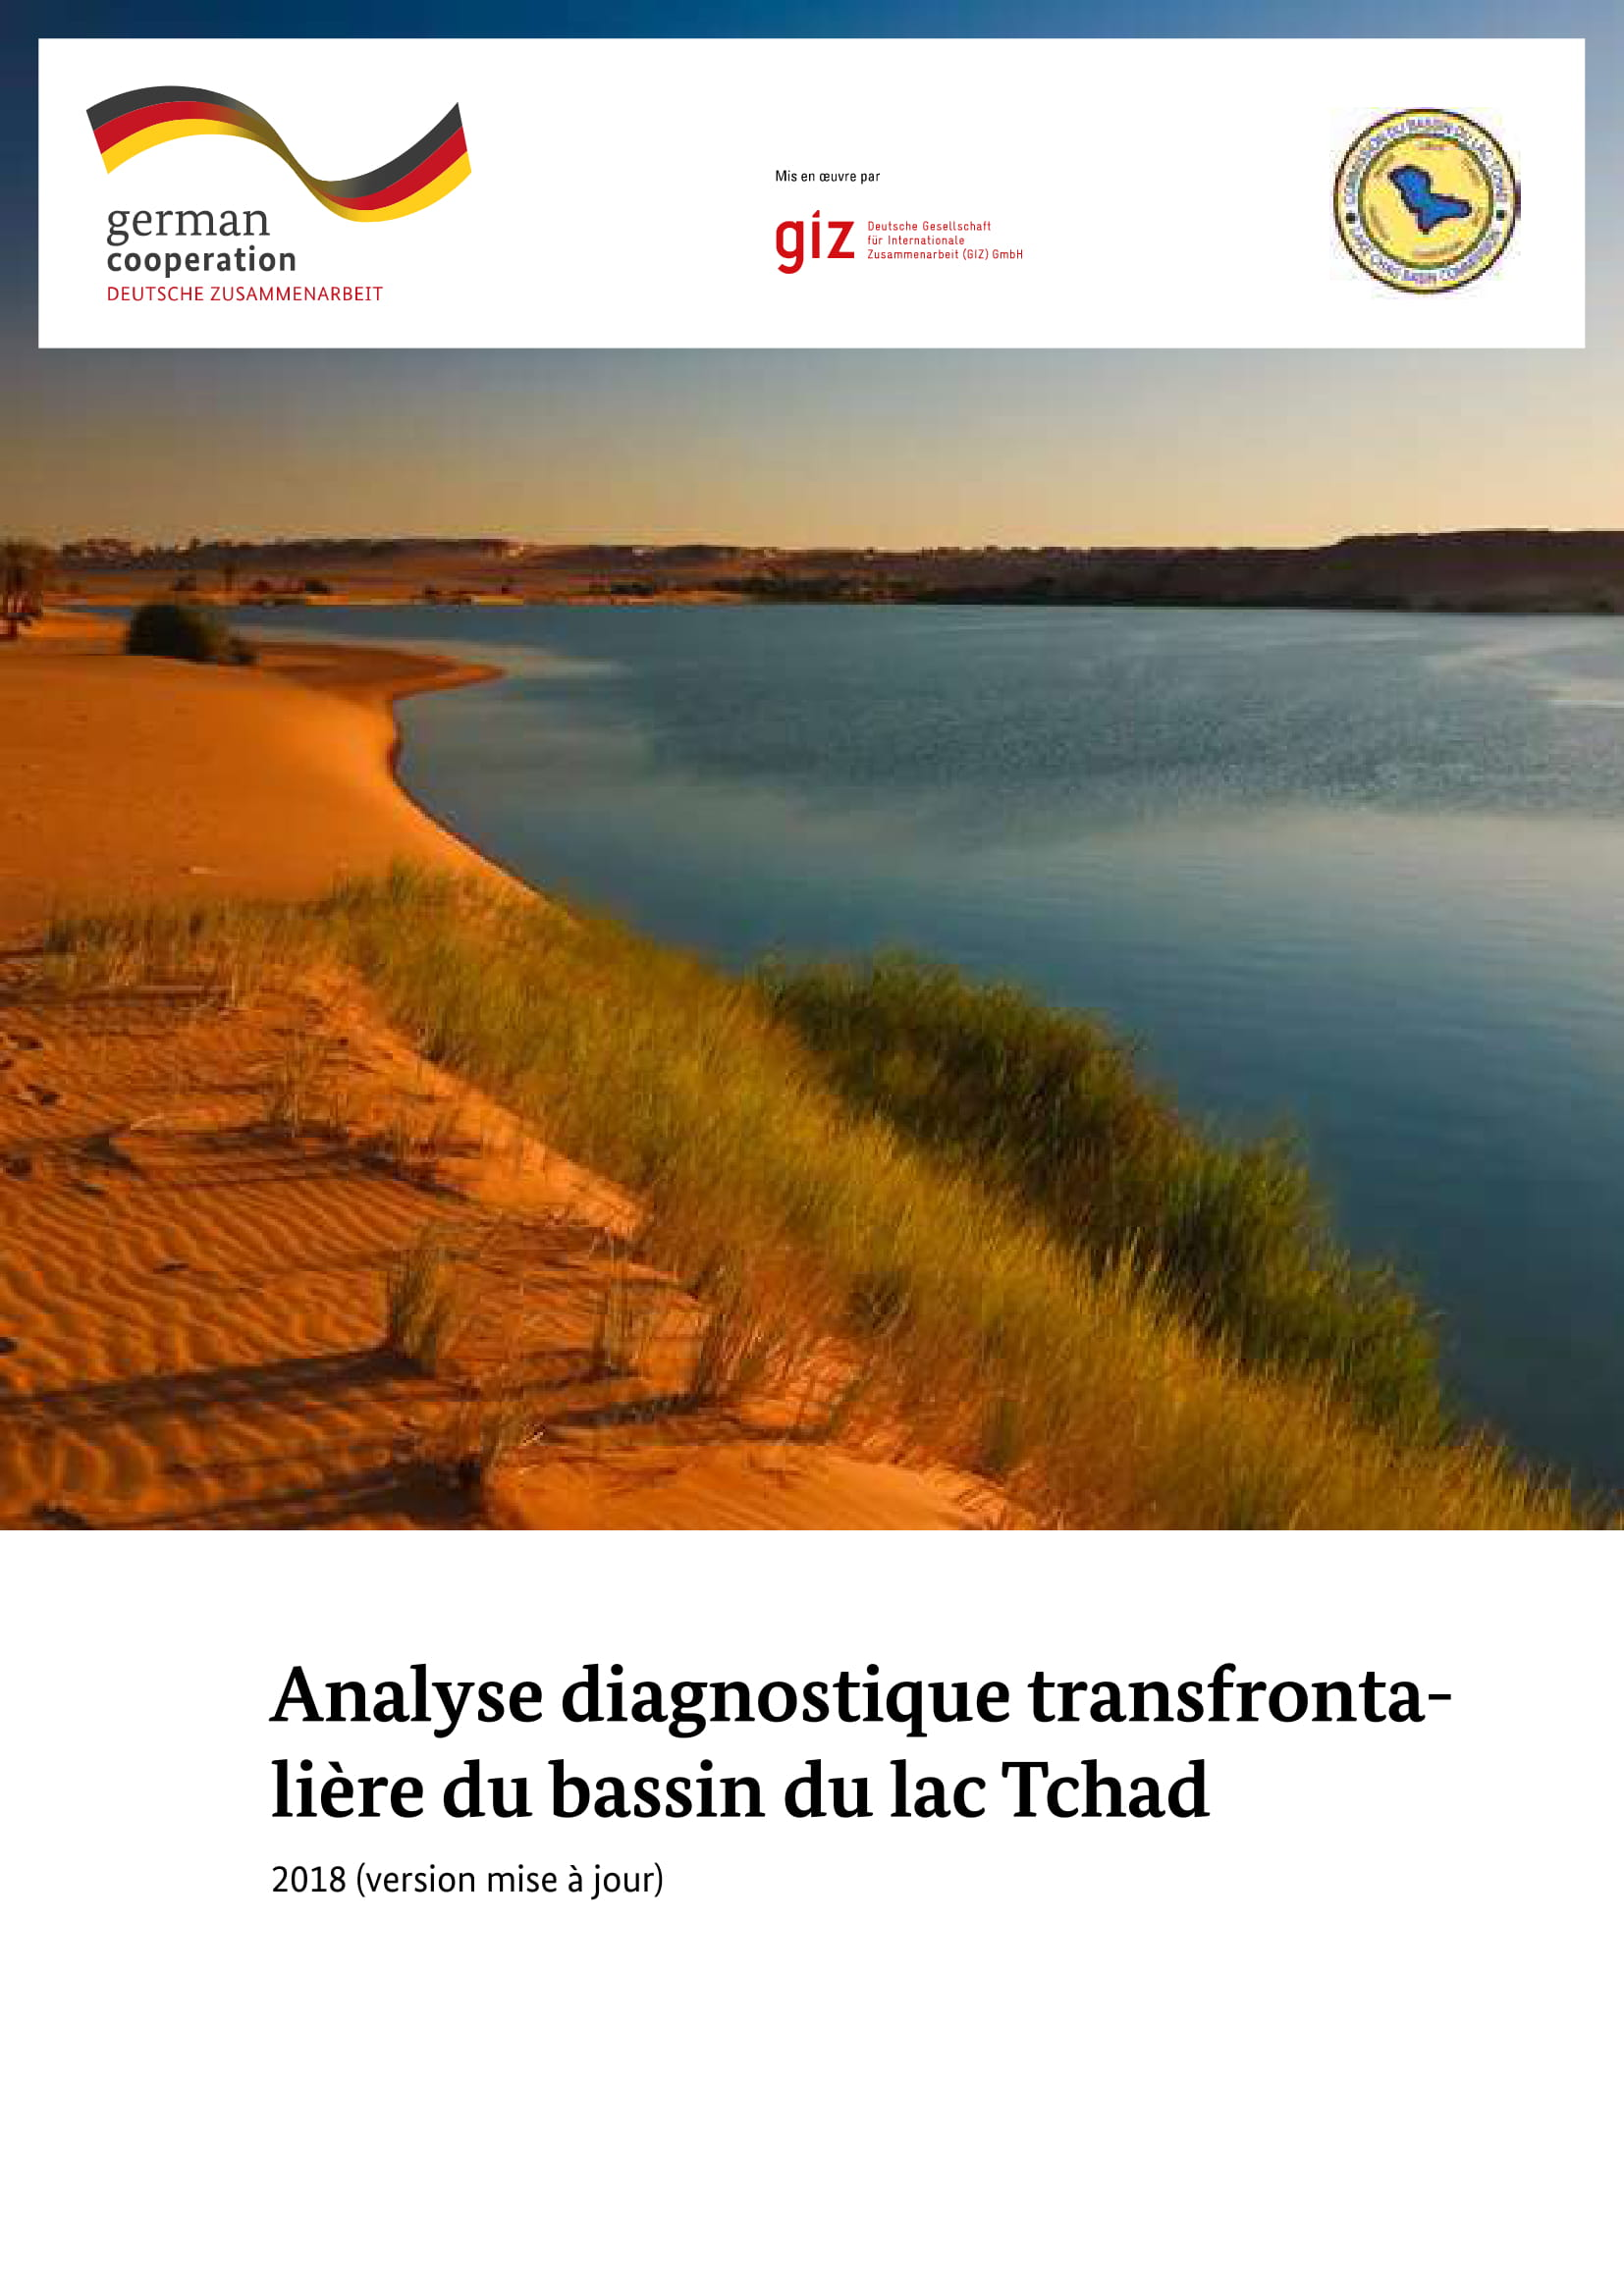 Trans-boundary Diagnostic Analysis of the Lake Chad Basin 2018 Update